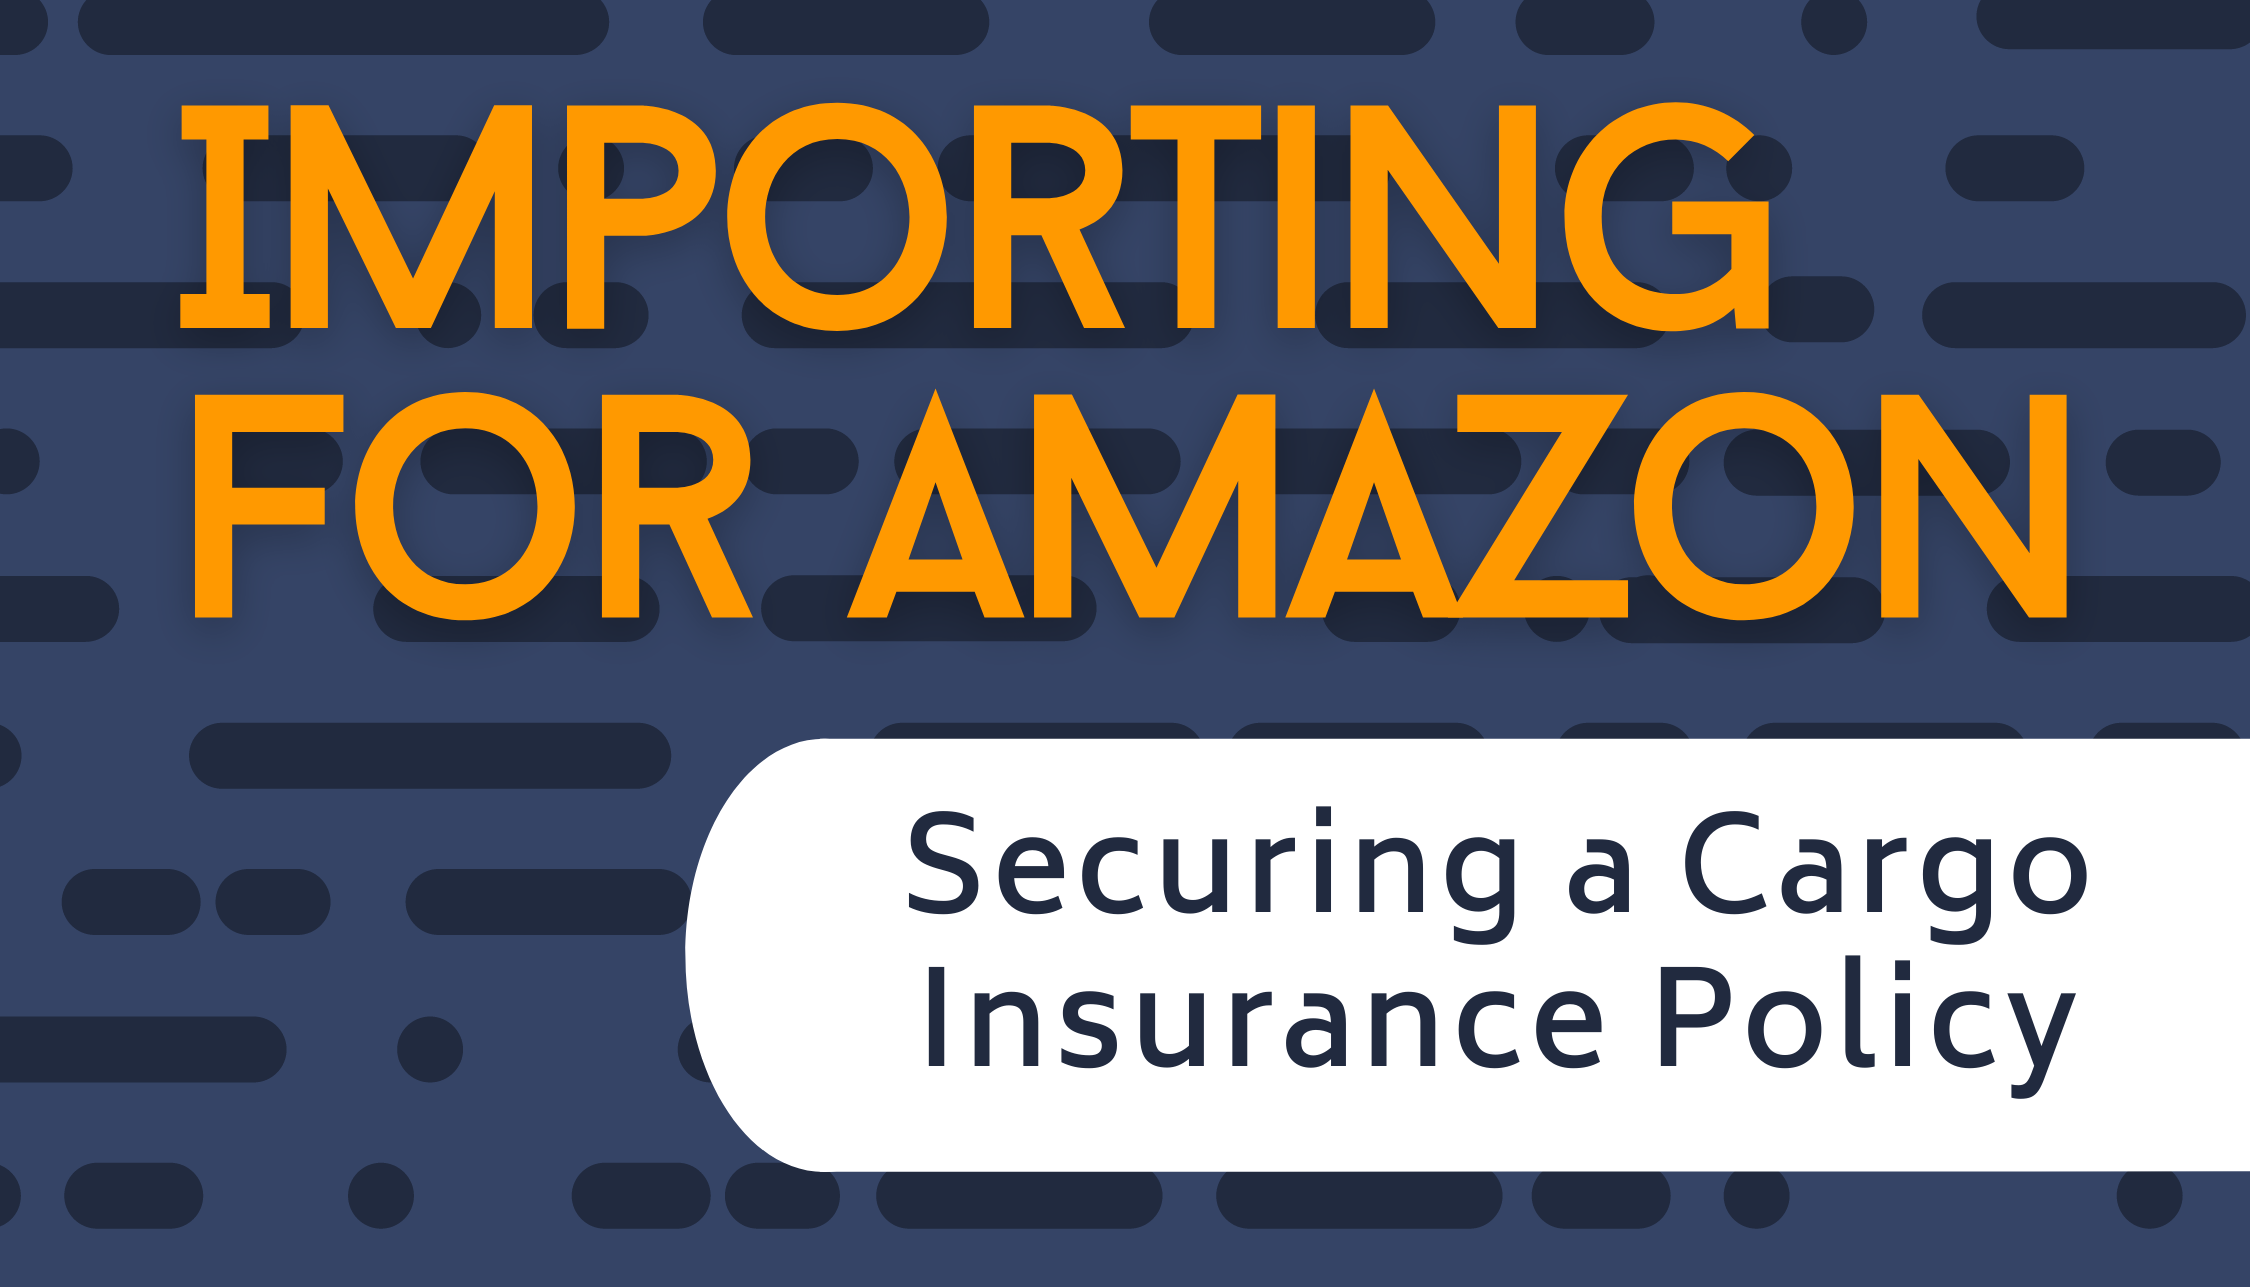 Importing for Amazon | Securing a Cargo Insurance Policy